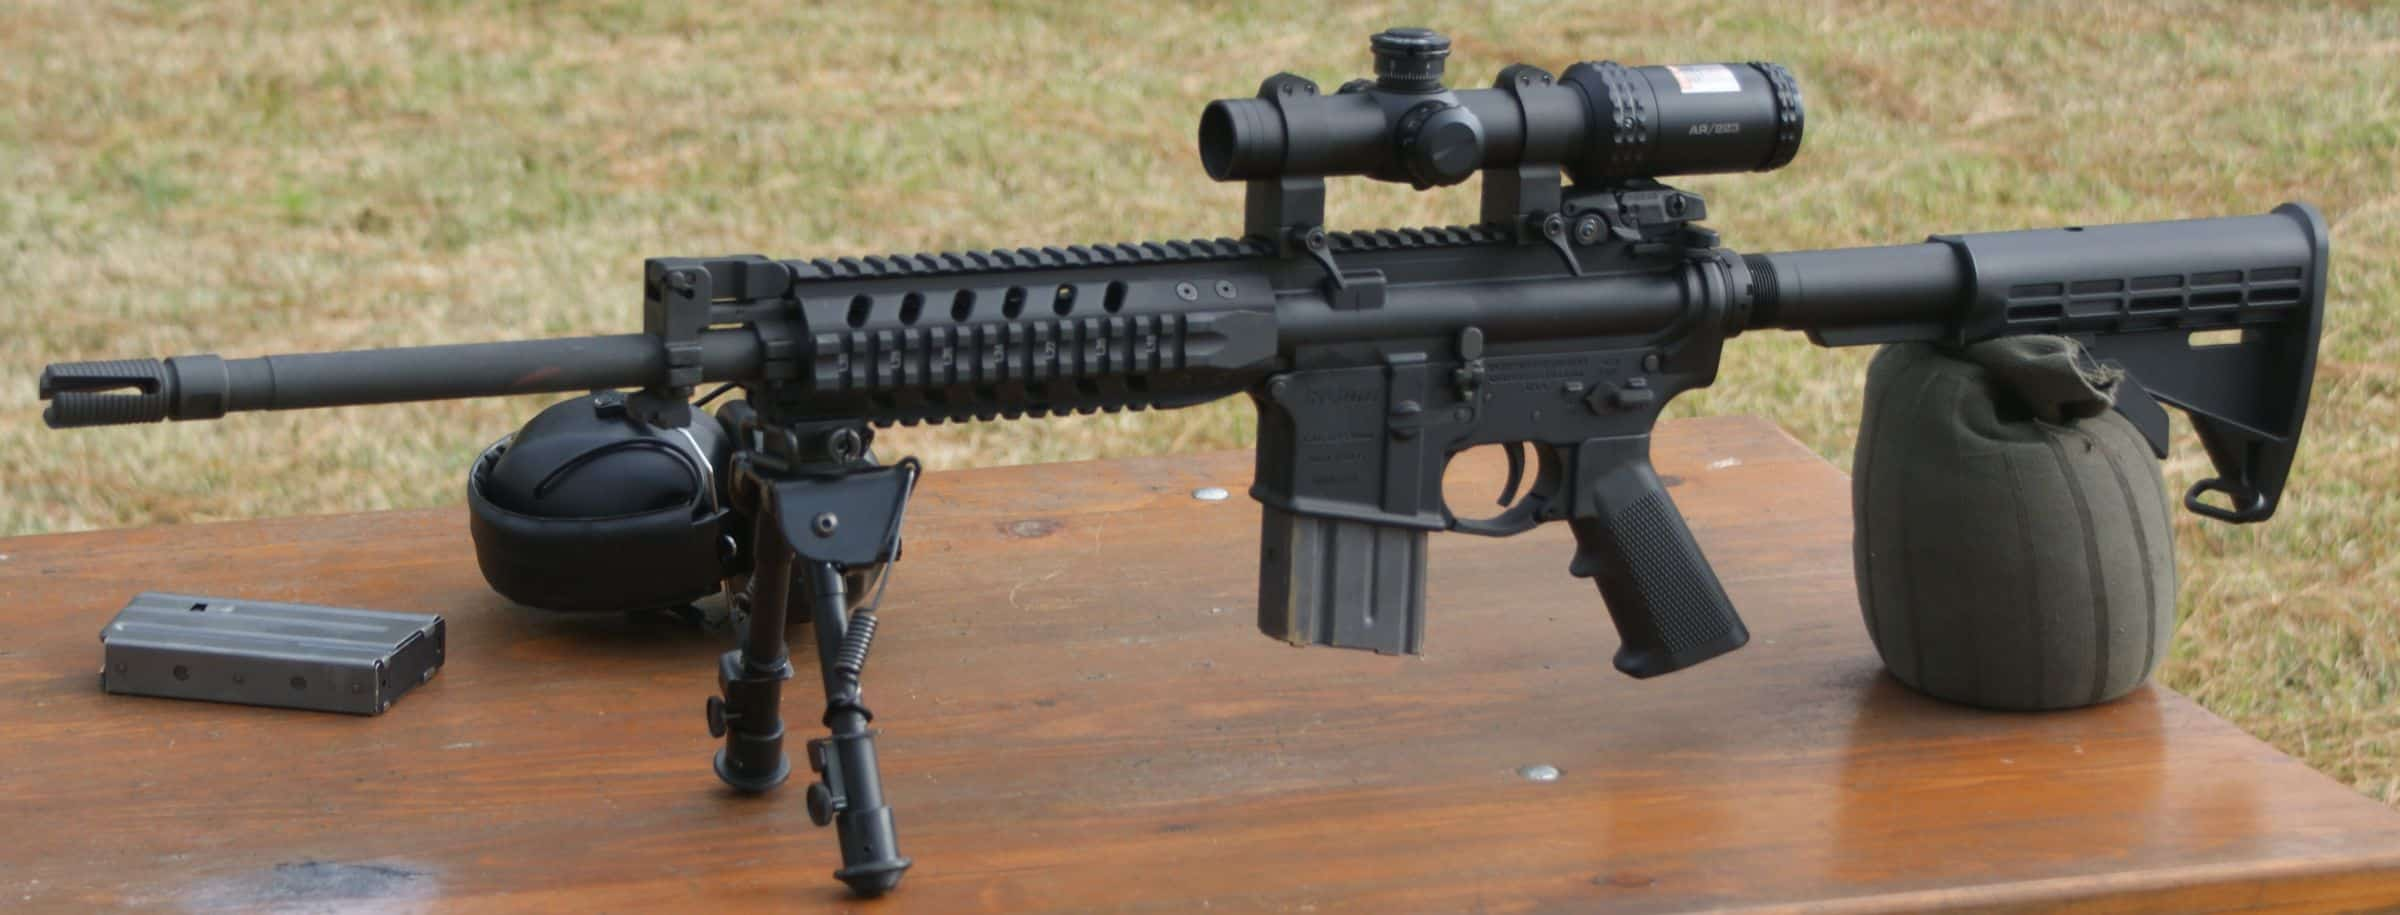 ar 15 scopes